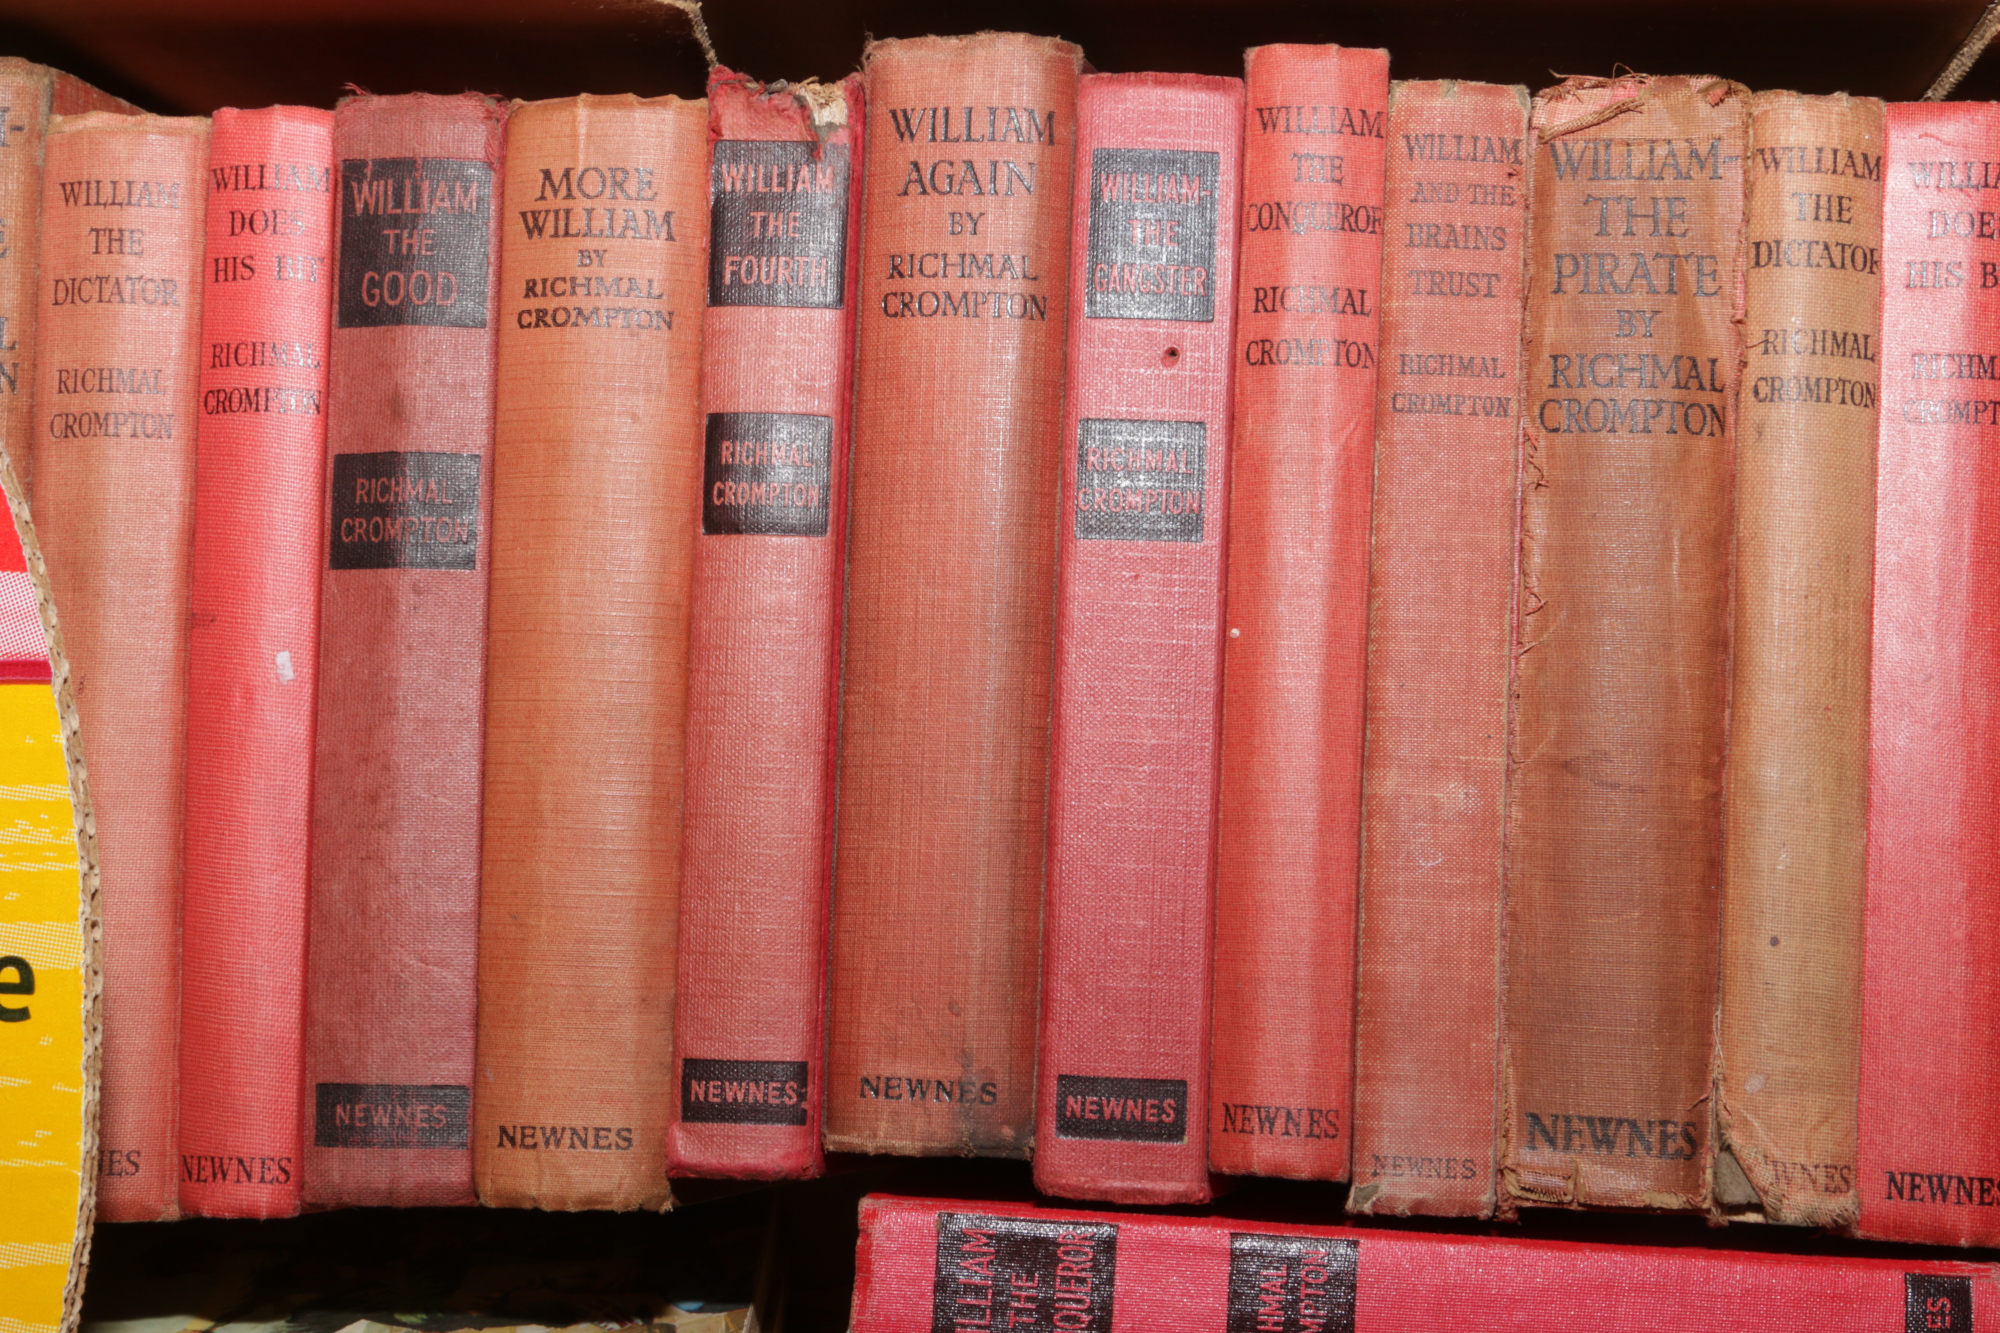 Lot 87 - A box of approximately 50 William books by Richmal Crompton.